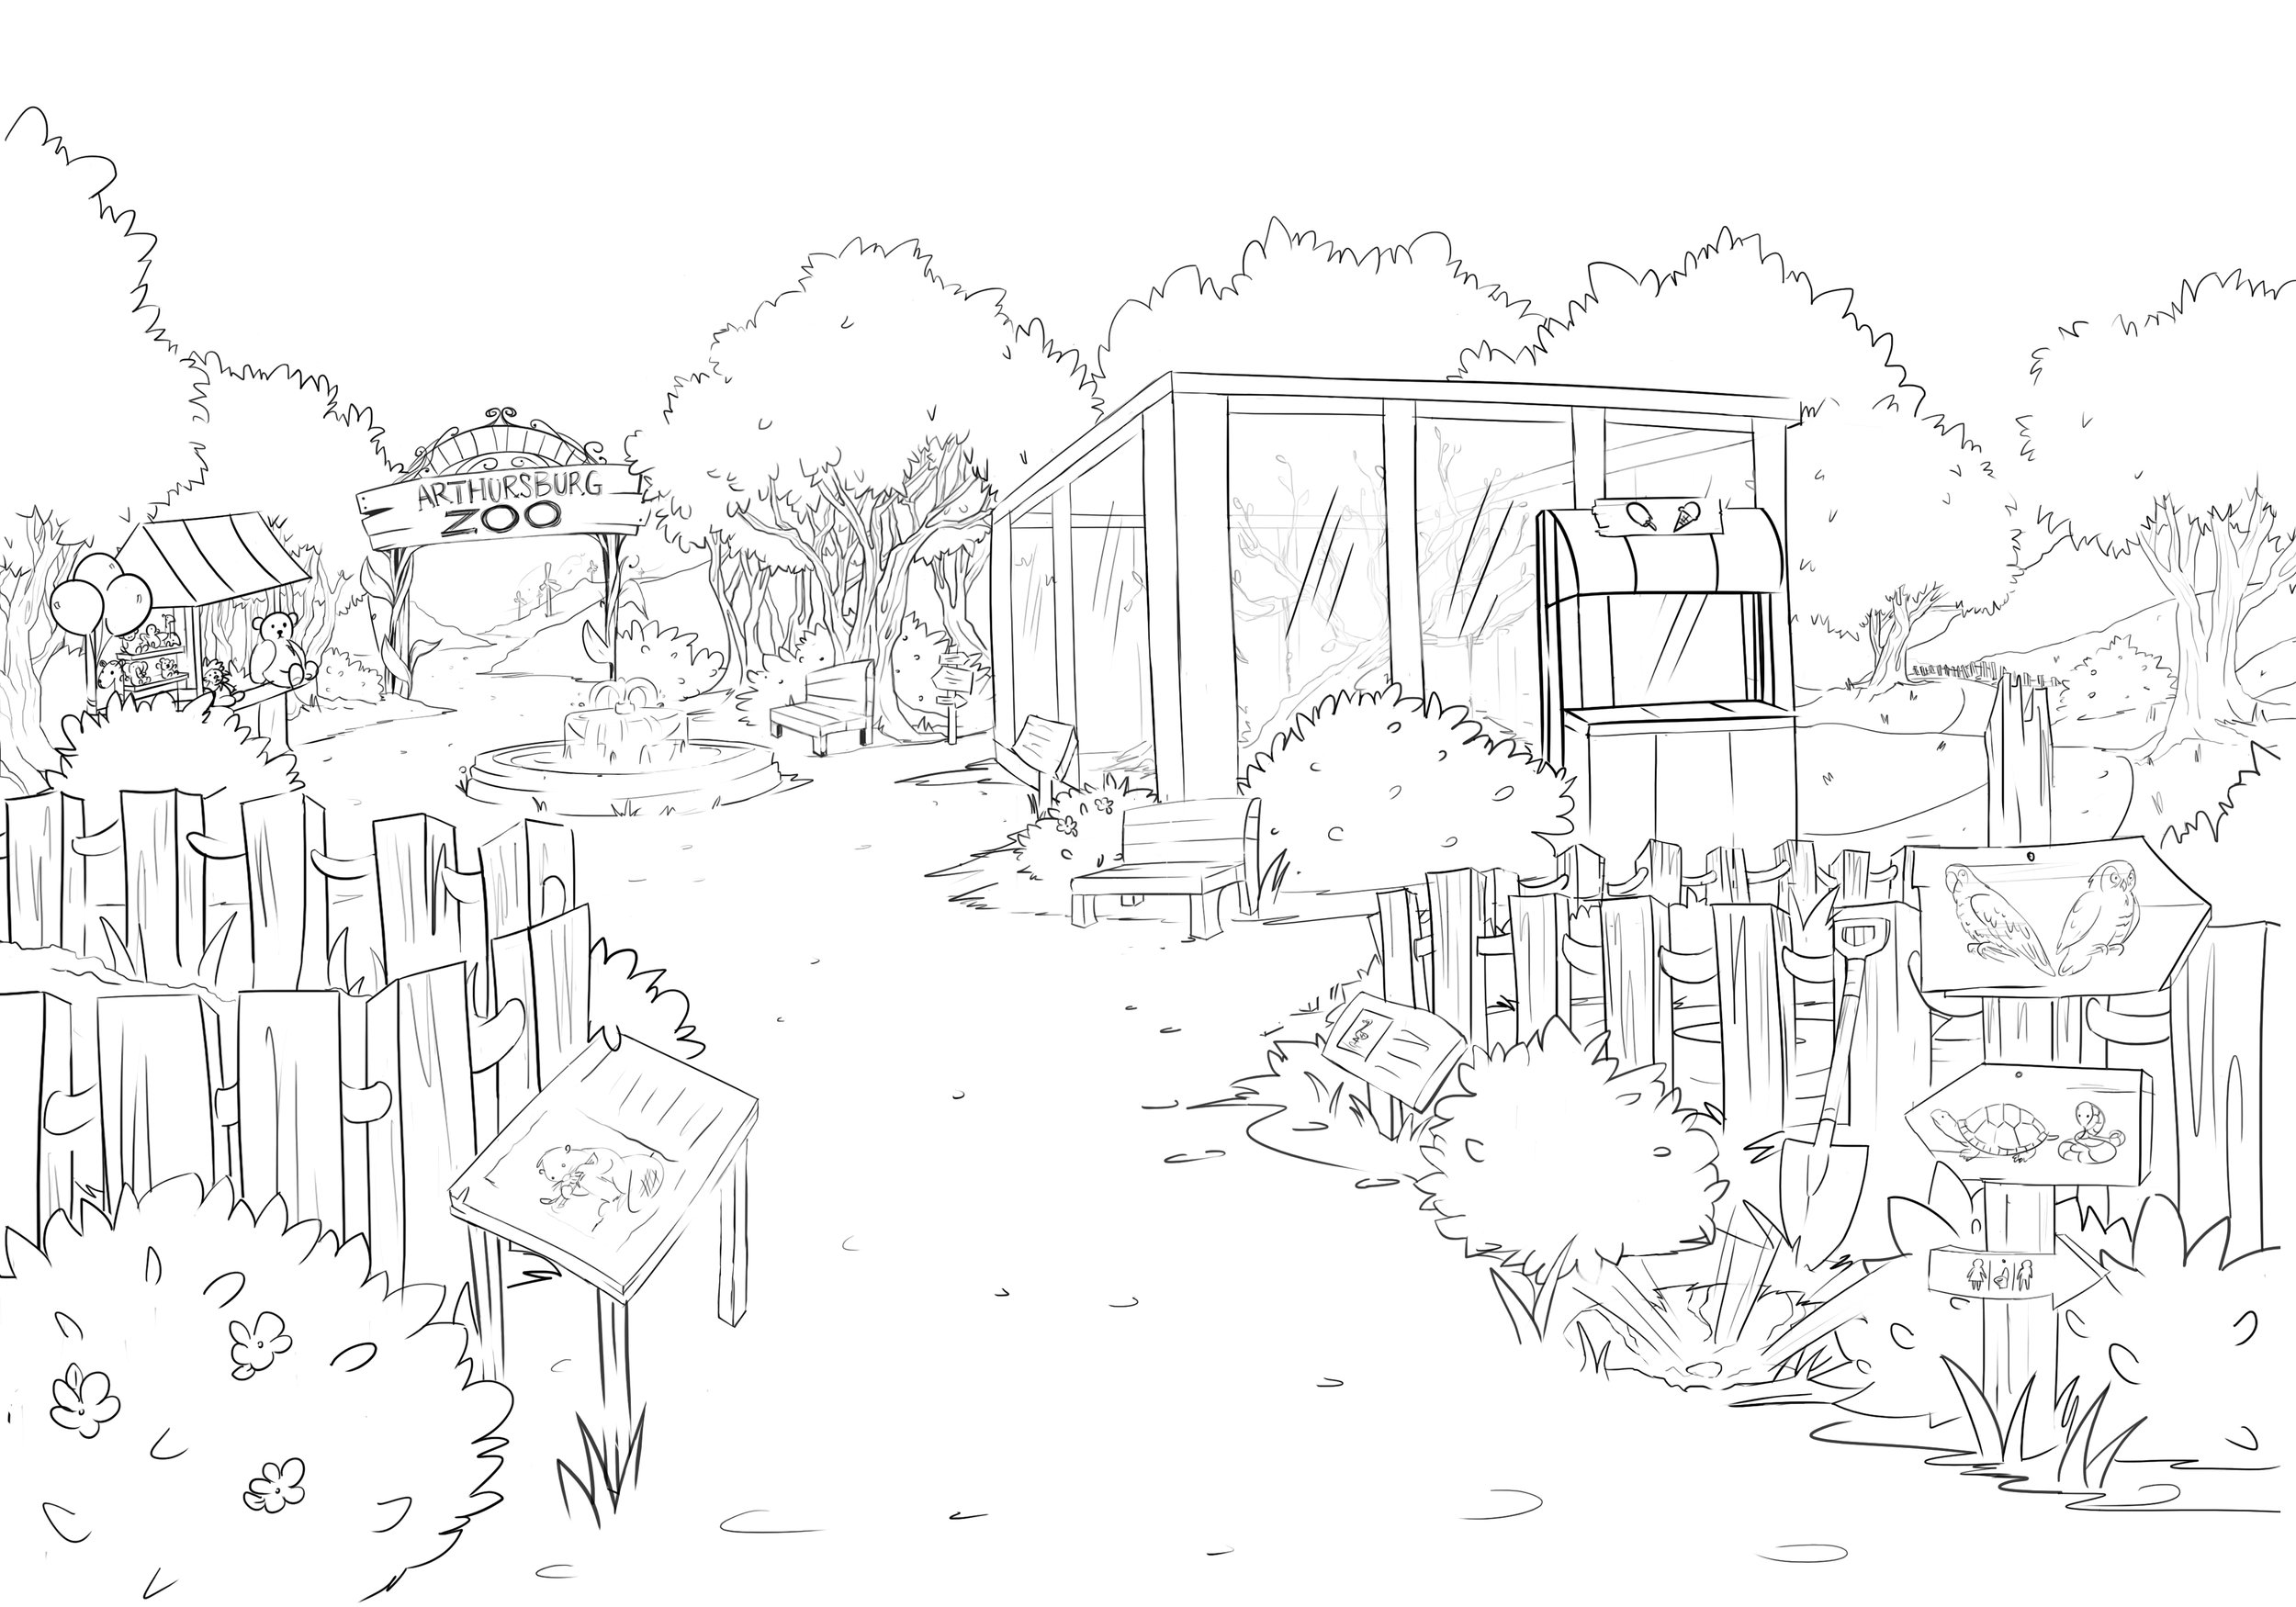 zoo_lineart_edit-6